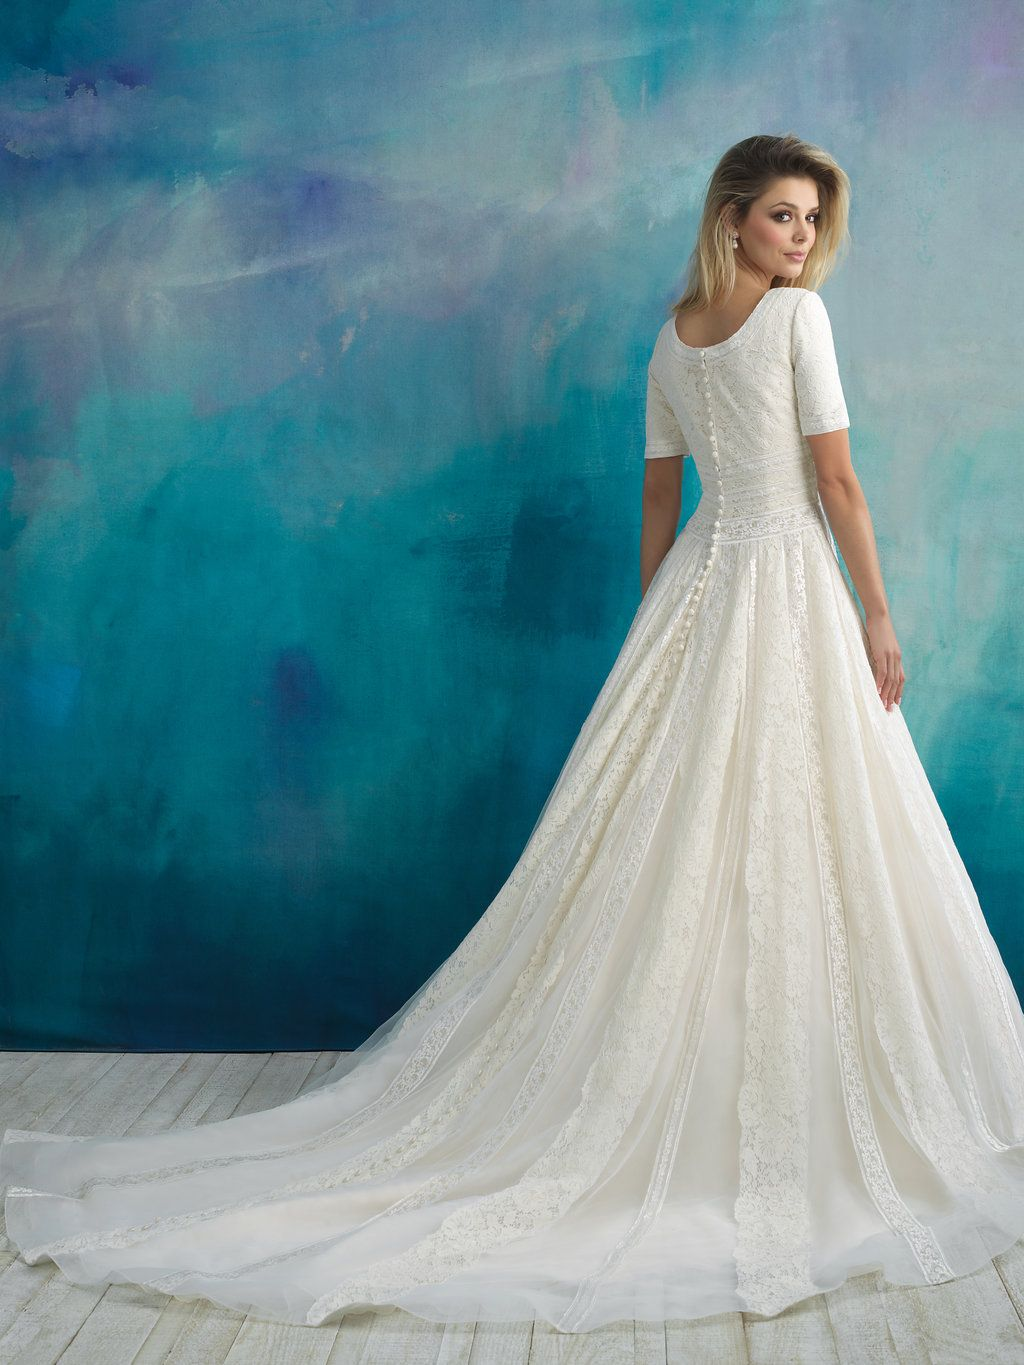 modest wedding dress perfect for lds temple wedding lace ballgown ...